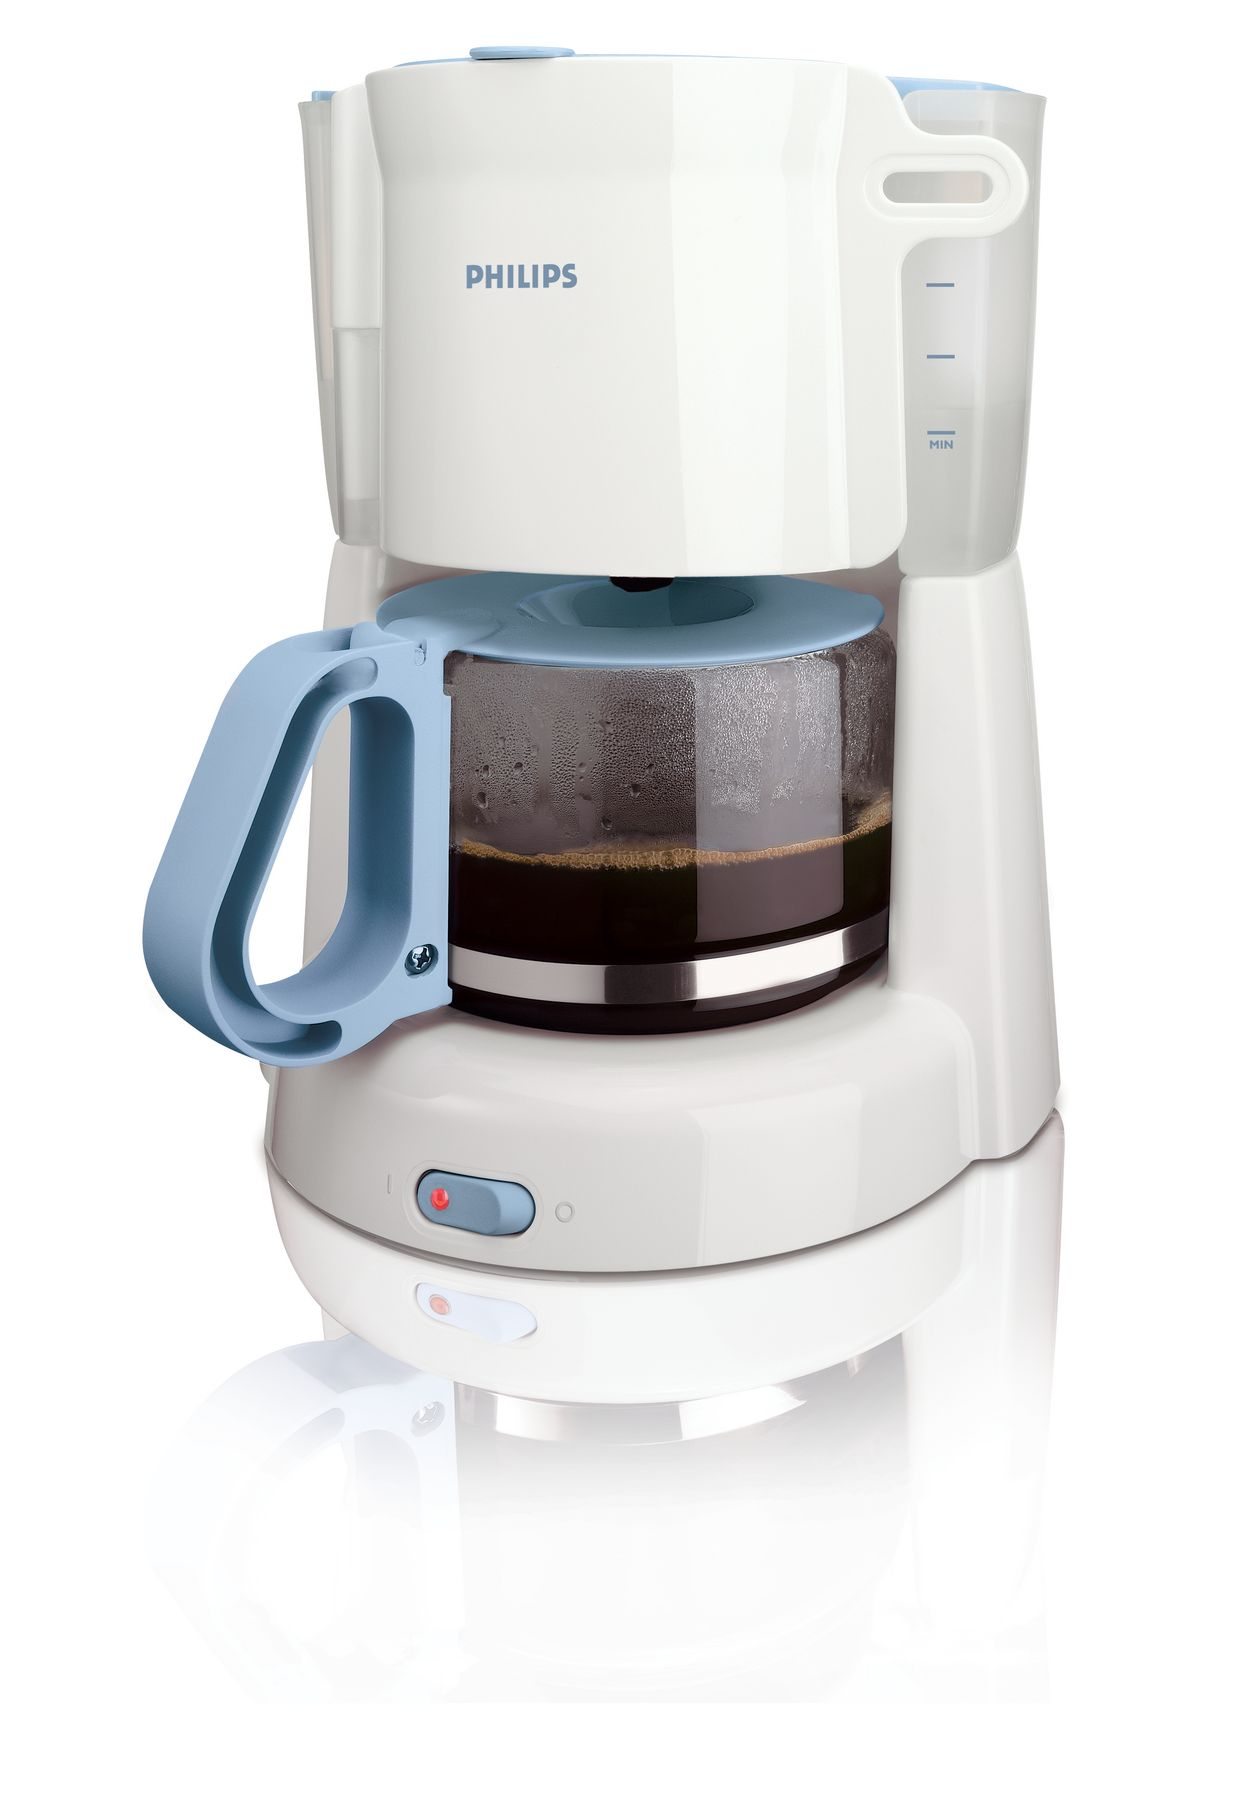 Philips Coffee Maker Calc : Coffee maker HD7466/70 Philips